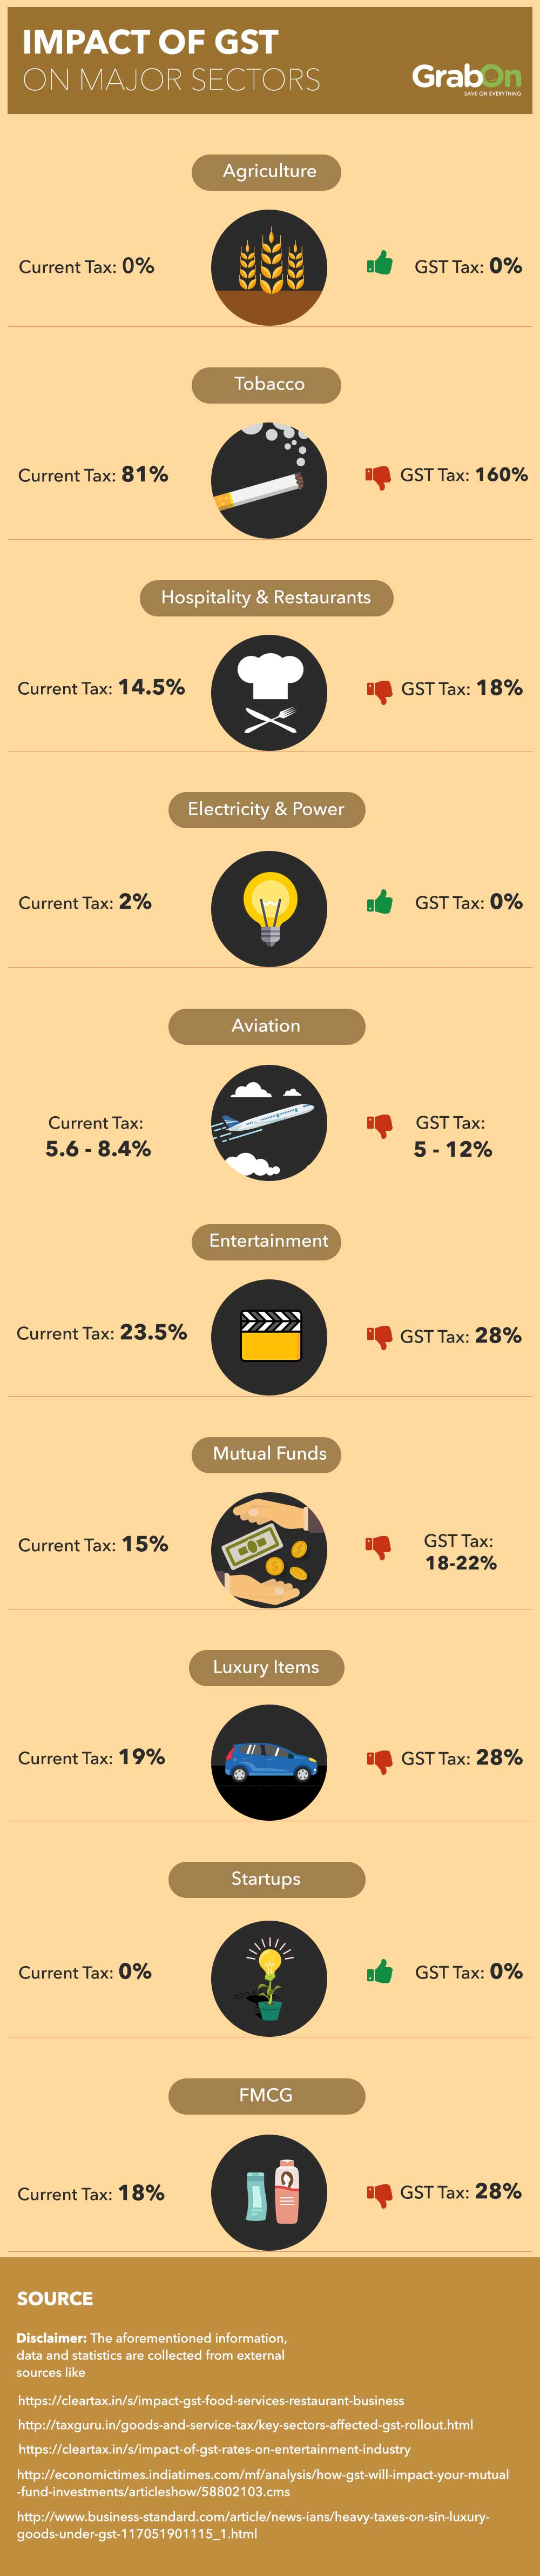 Impact of Gst on Major Sectors